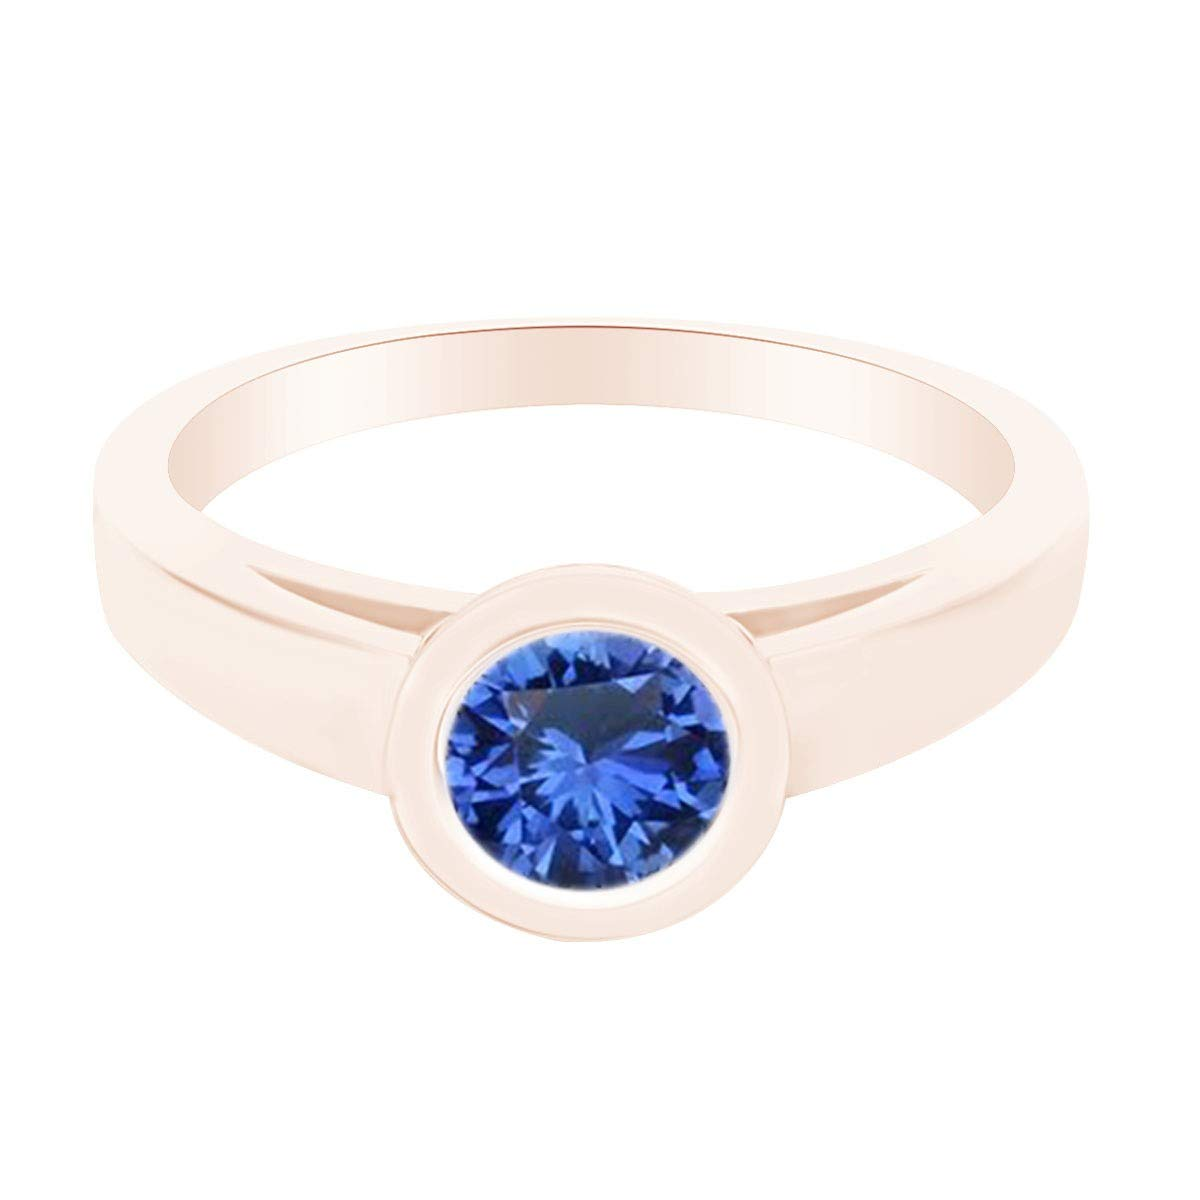 AFFY Simulated Blue Sapphire Bezel Set Solitaire Engagement Ring 14k Gold Over Sterling Silver